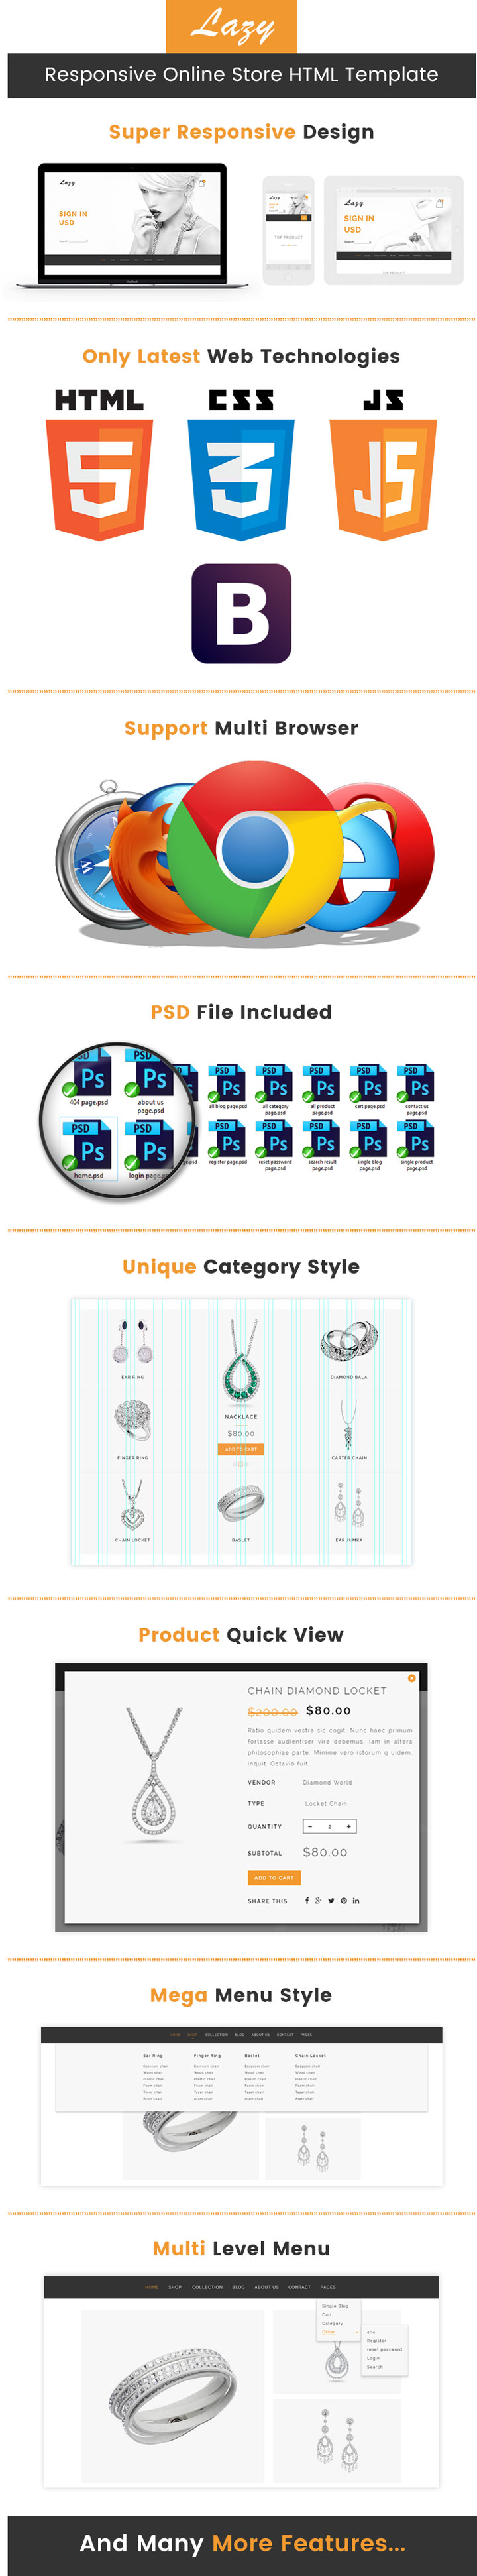 Lazy - Responsive Jewellery Online Store HTML Template   ThemeTidy